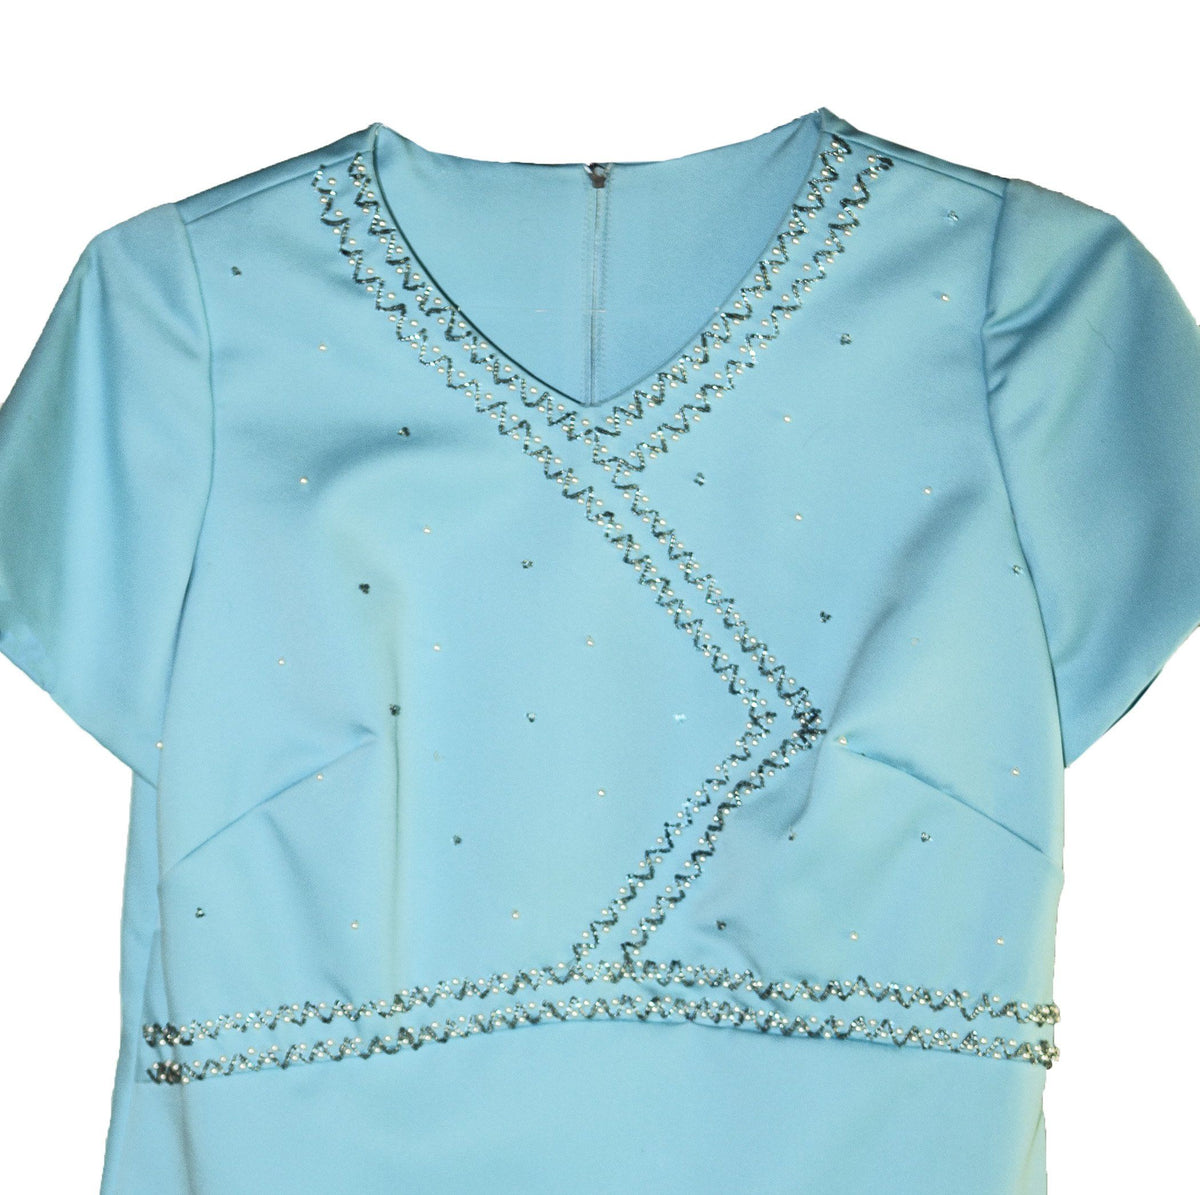 Aqua Blue Mini Dress 5 with Decorative Beading